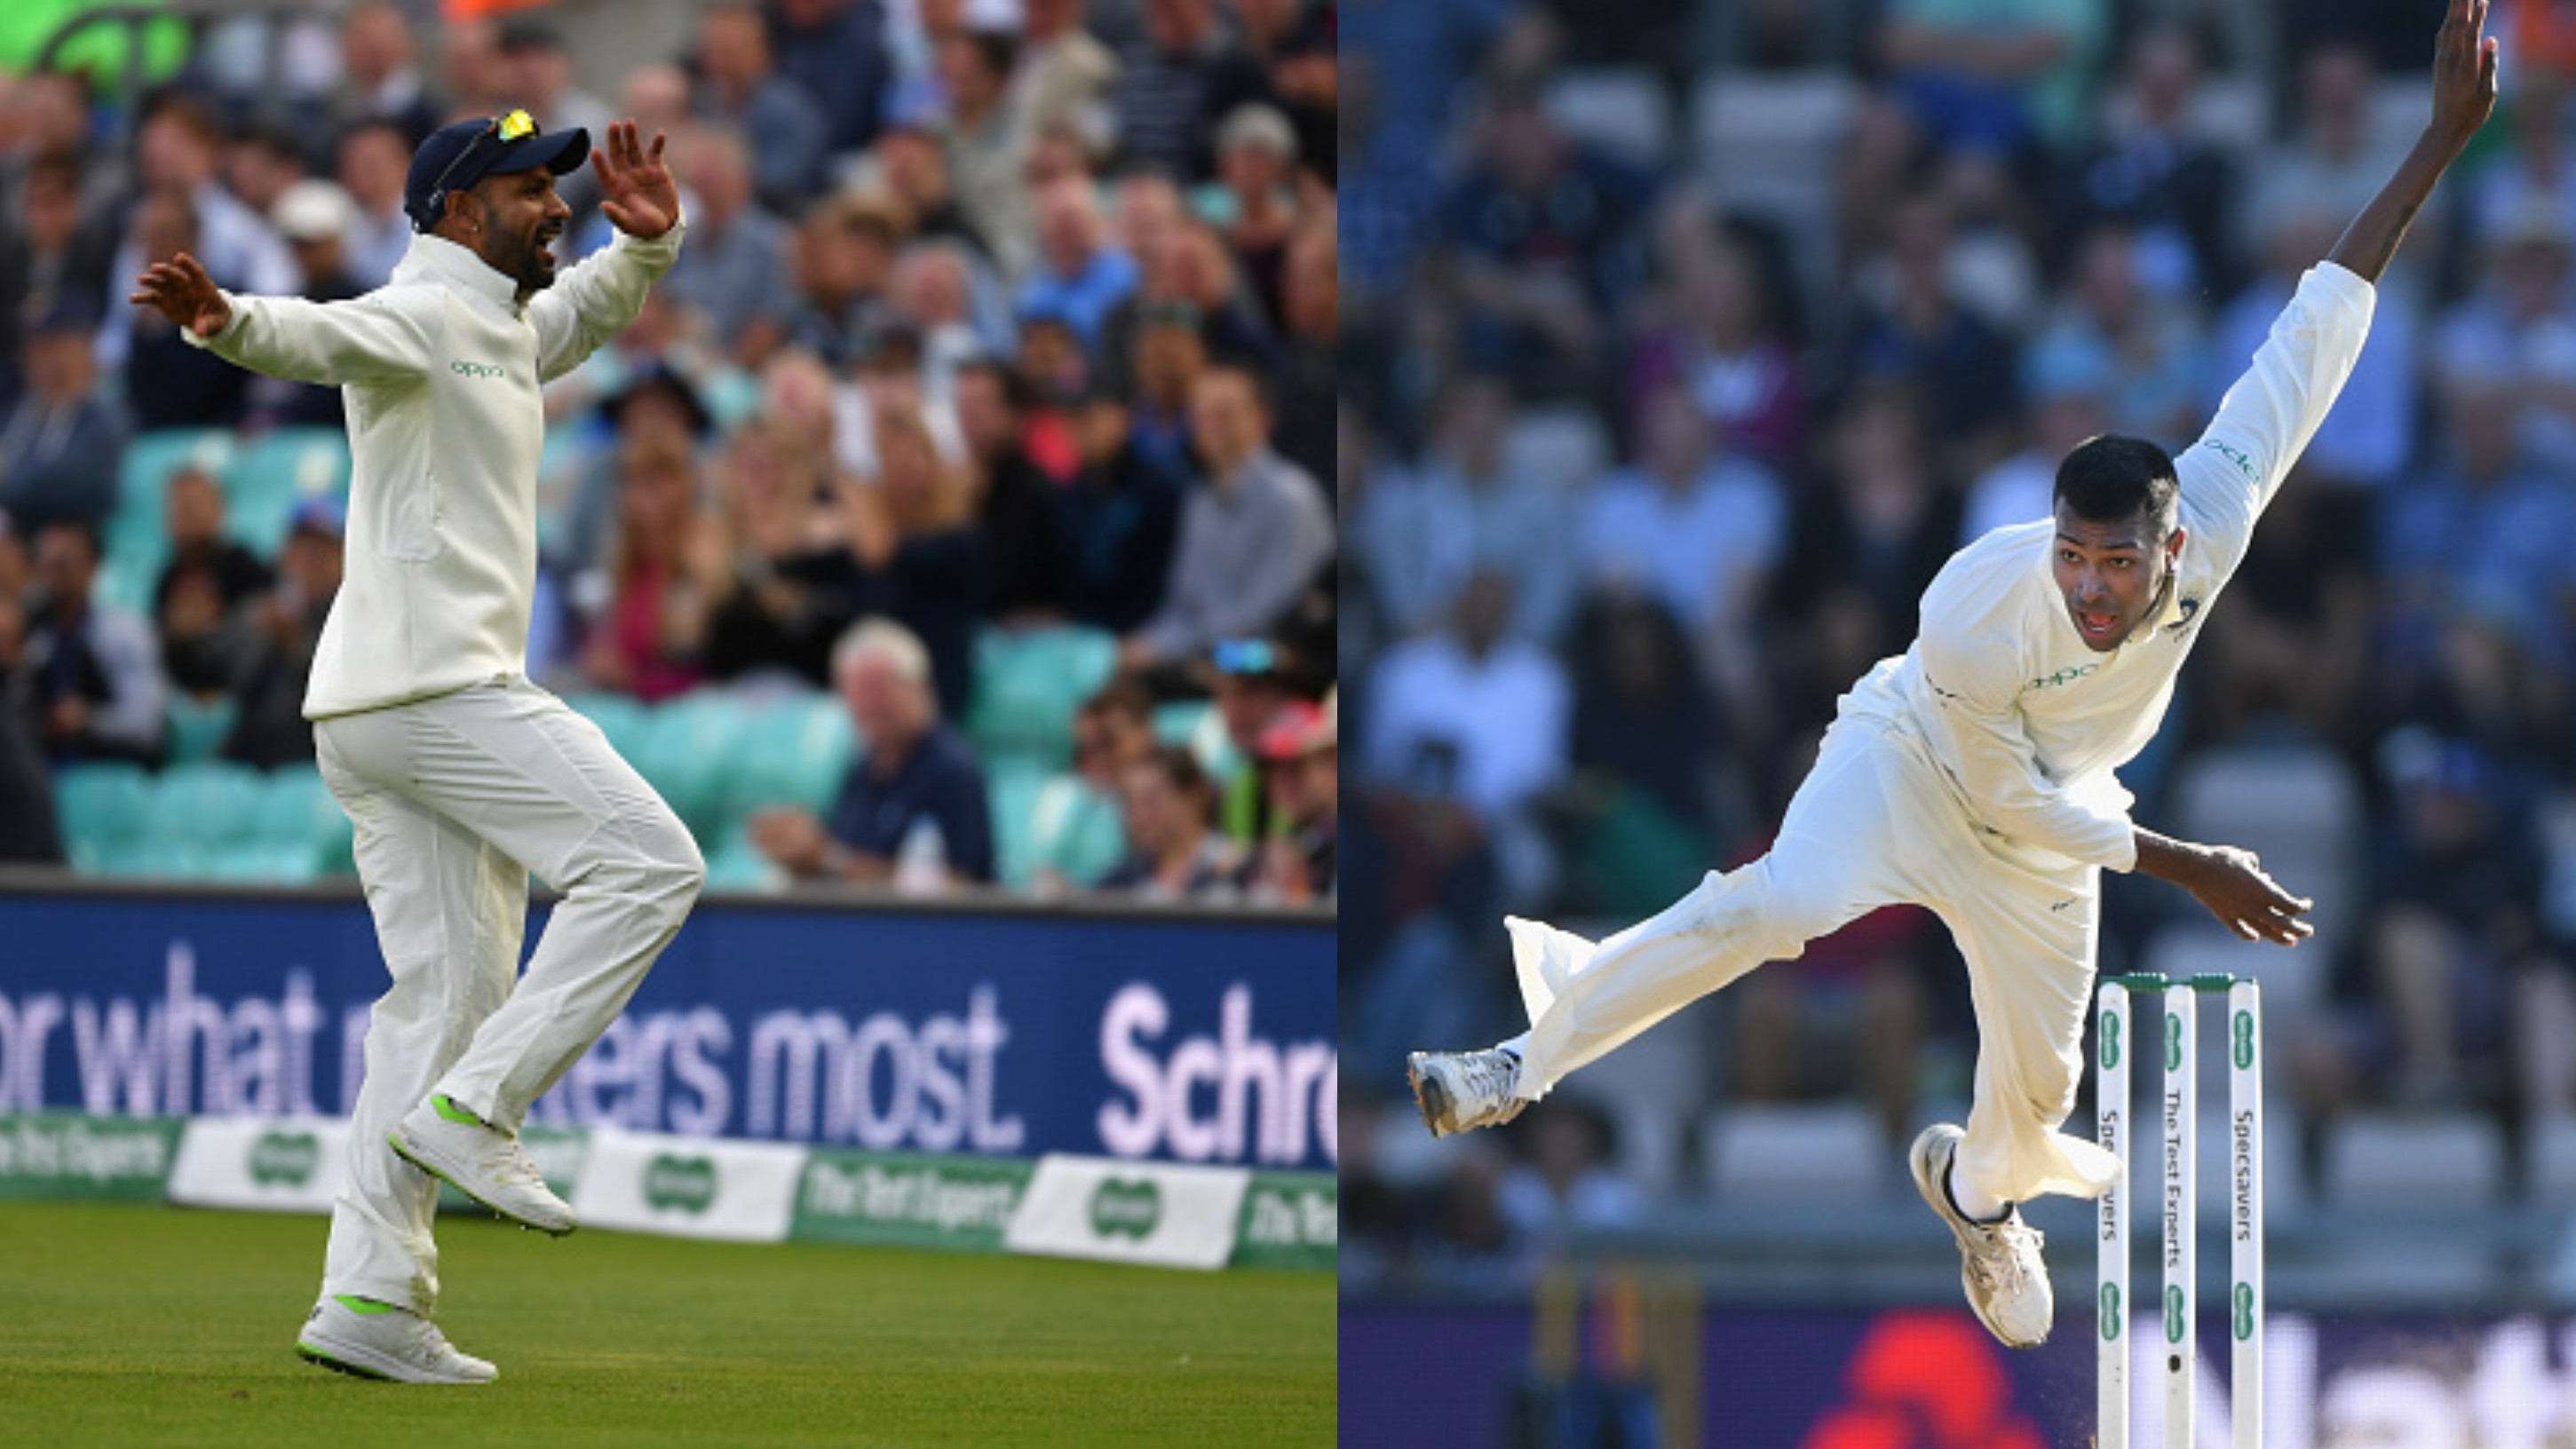 ENG v IND 2018: Hardik Pandya reacts after Dhawan shows his bhangra moves at The Oval